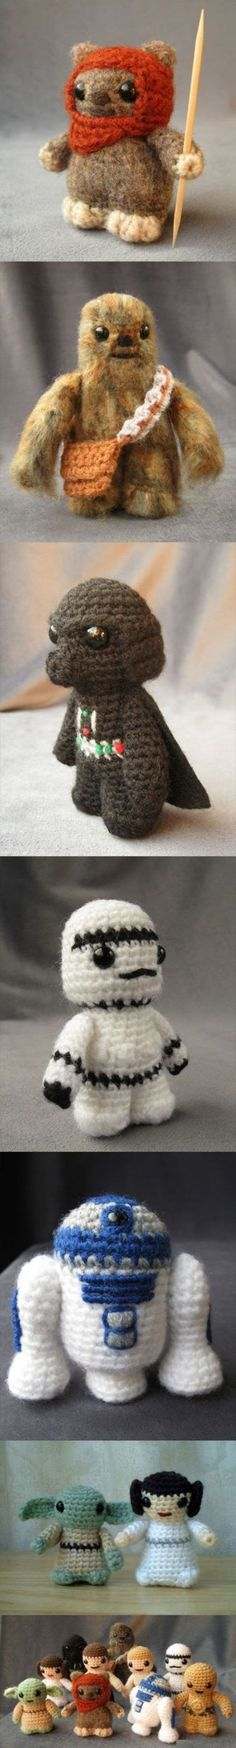 I <3 Star Wars and these are adorable